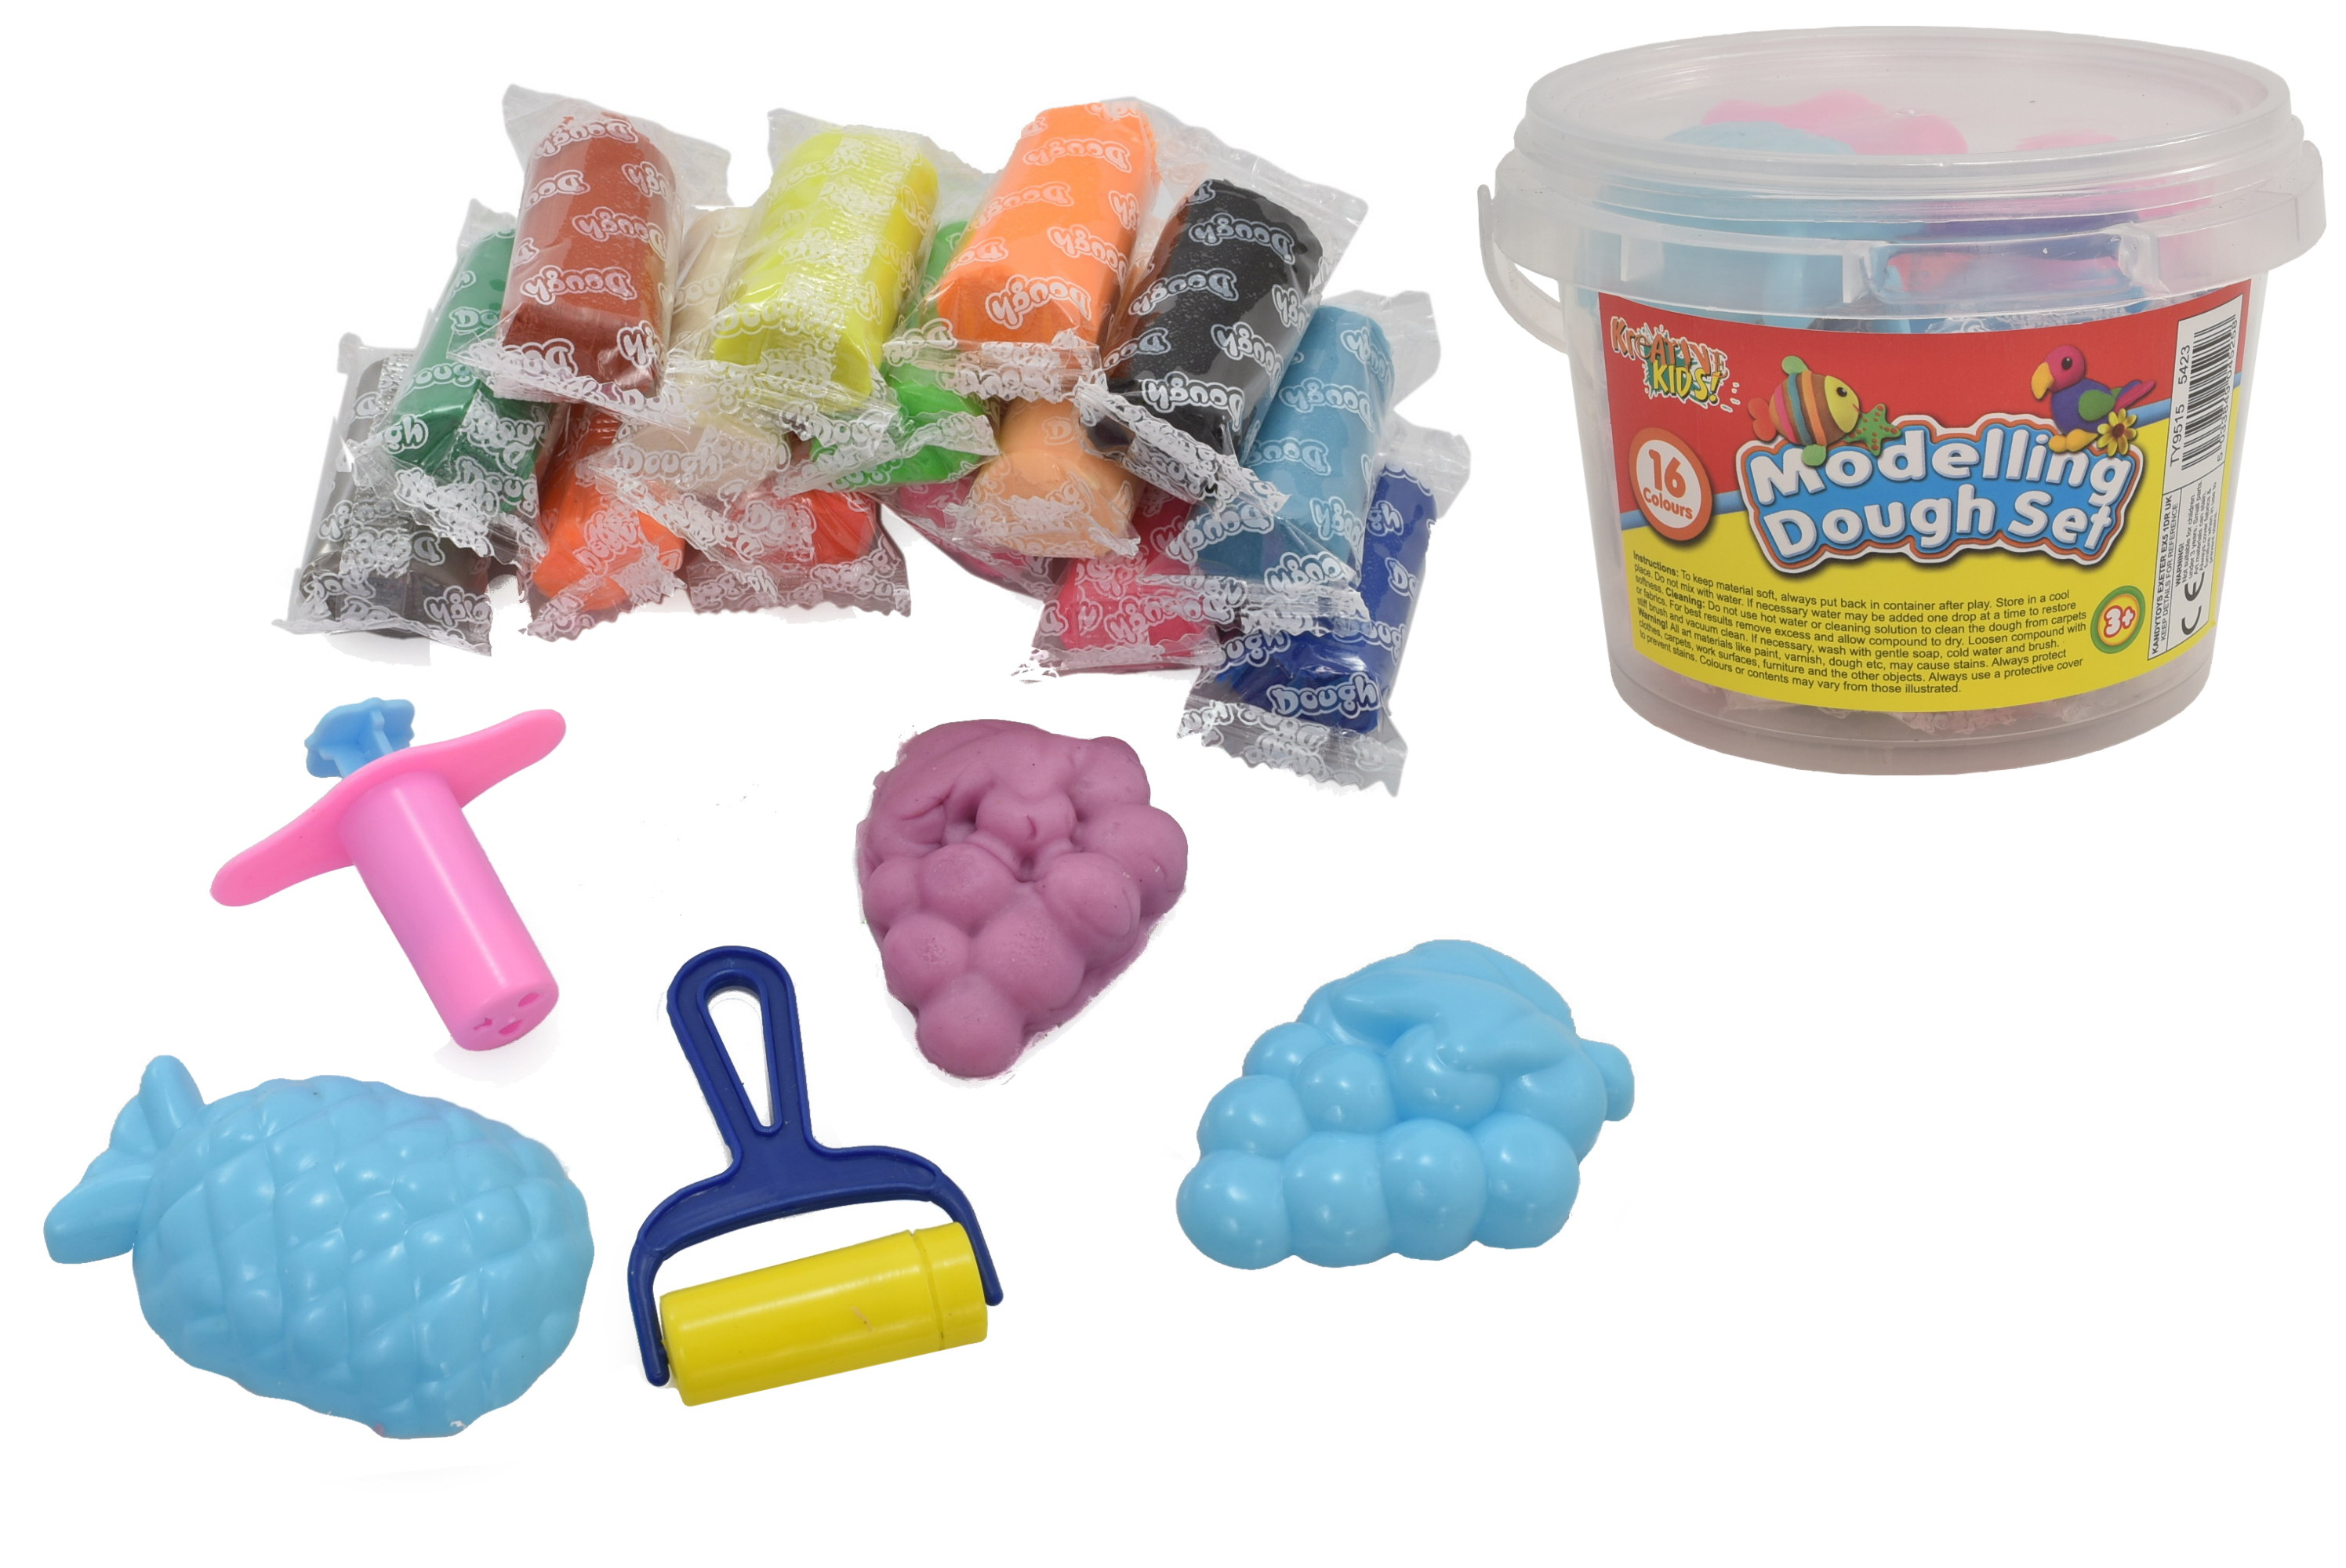 16pcs Modelling Dough & 4pc Moulds In Tub